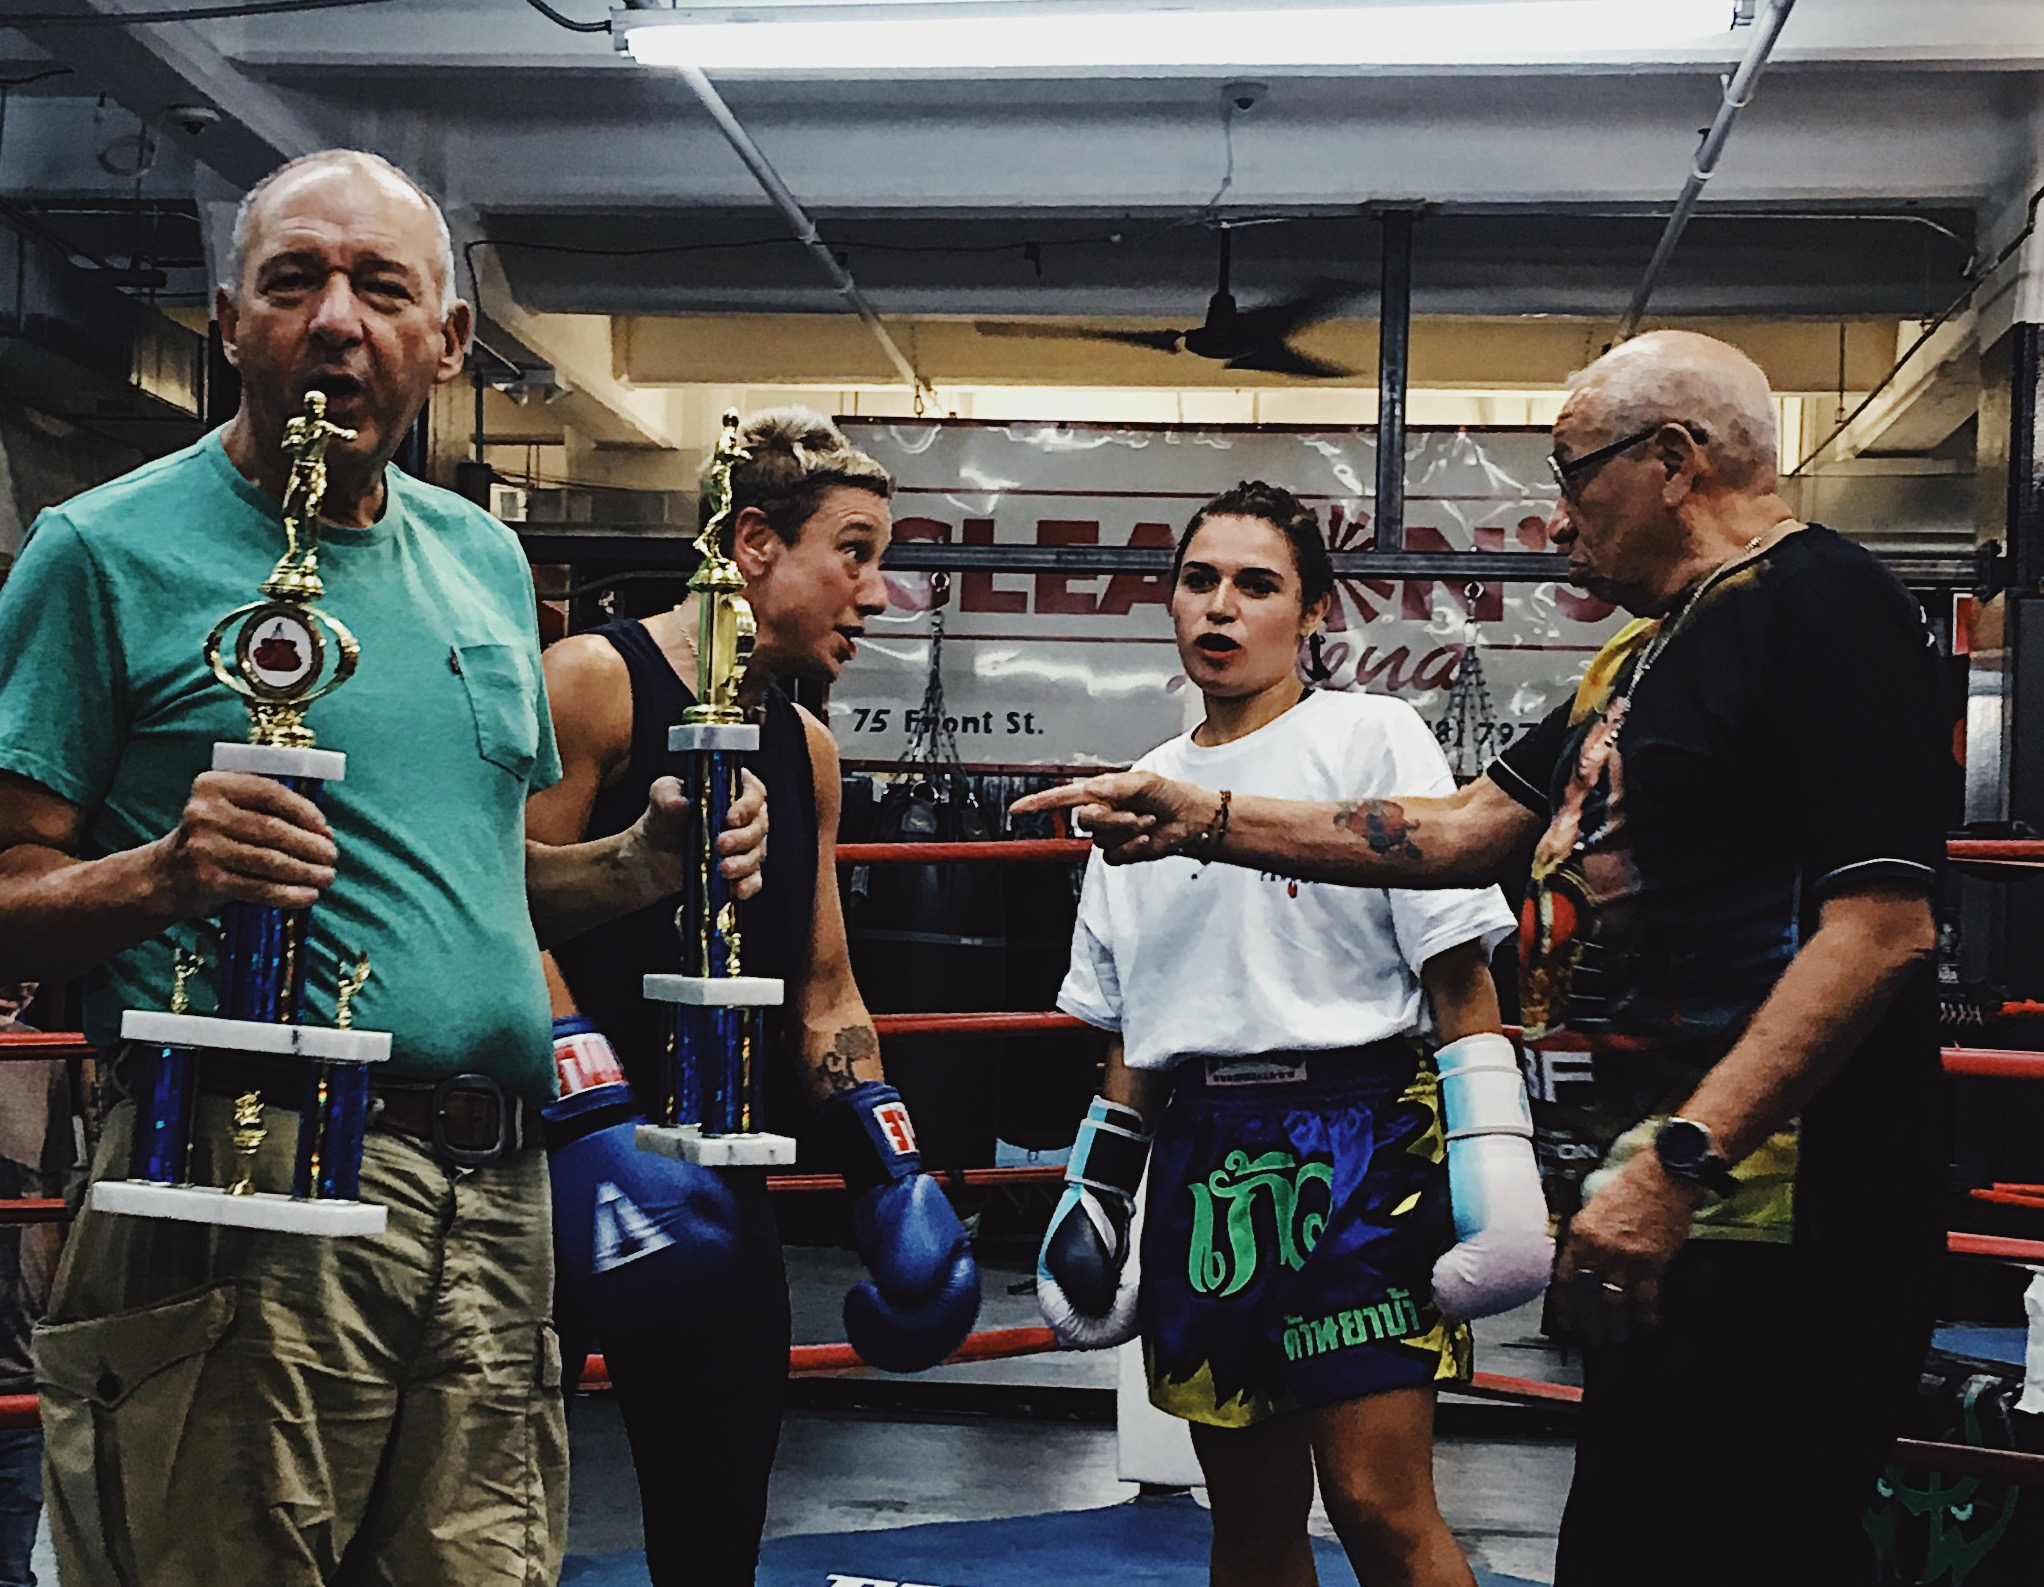 If you're going to have your first ever fight at Gleason's Gym, you're probably going to win it…